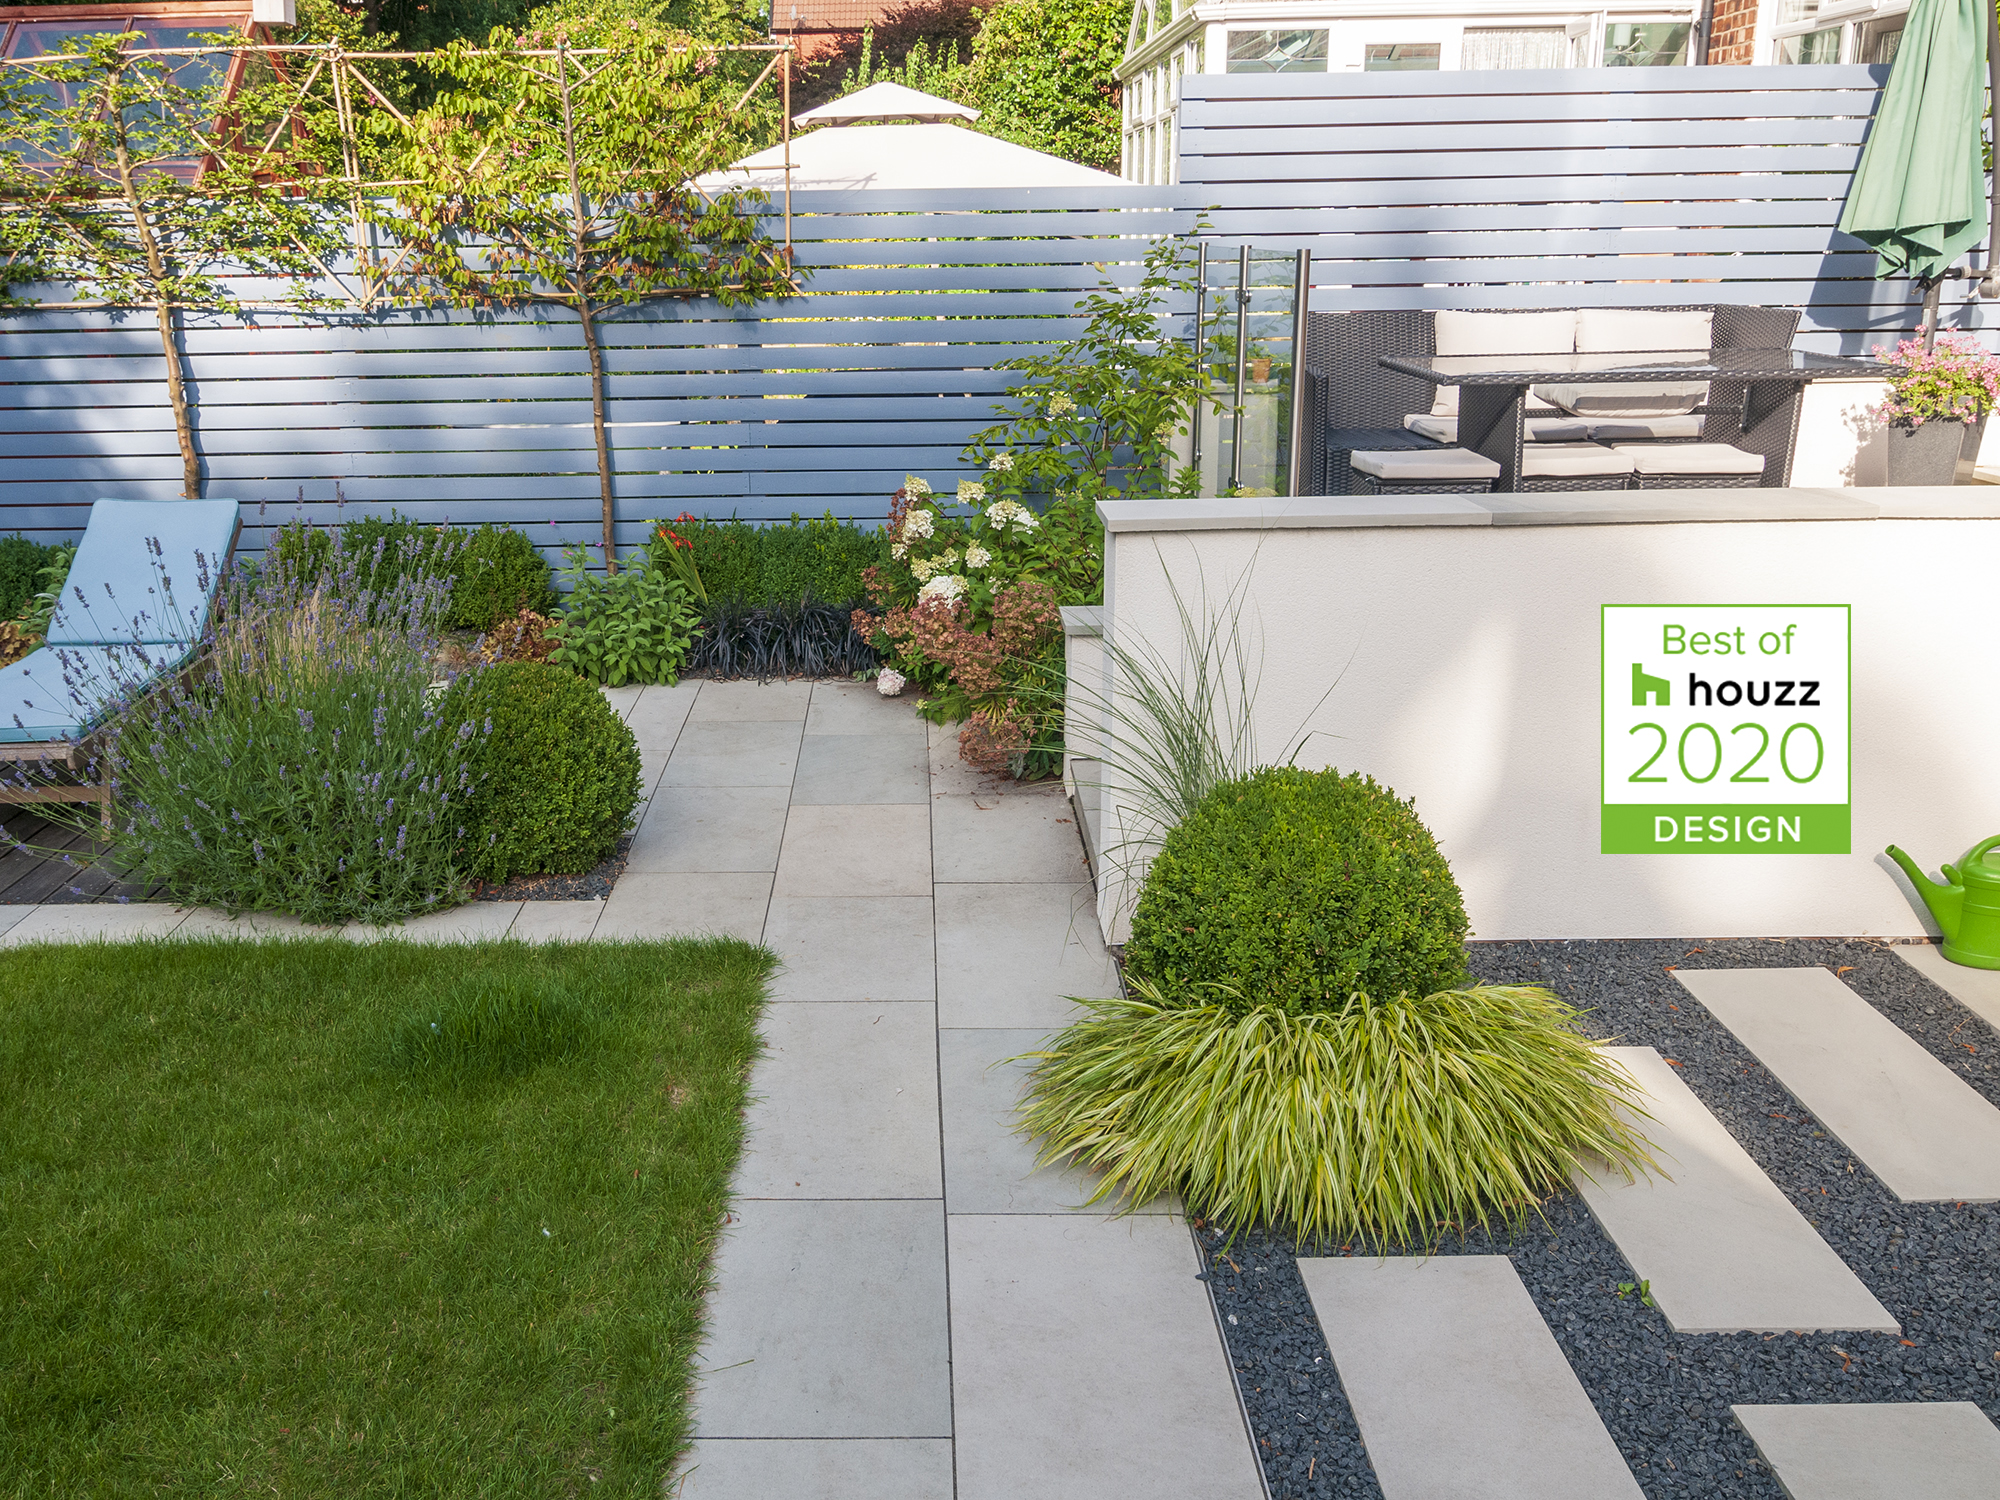 garden with box ball, Japanese forest grass, ophiopogon , Miscanthus, lavender, rattan and japanese stepping stones houzz award 2020